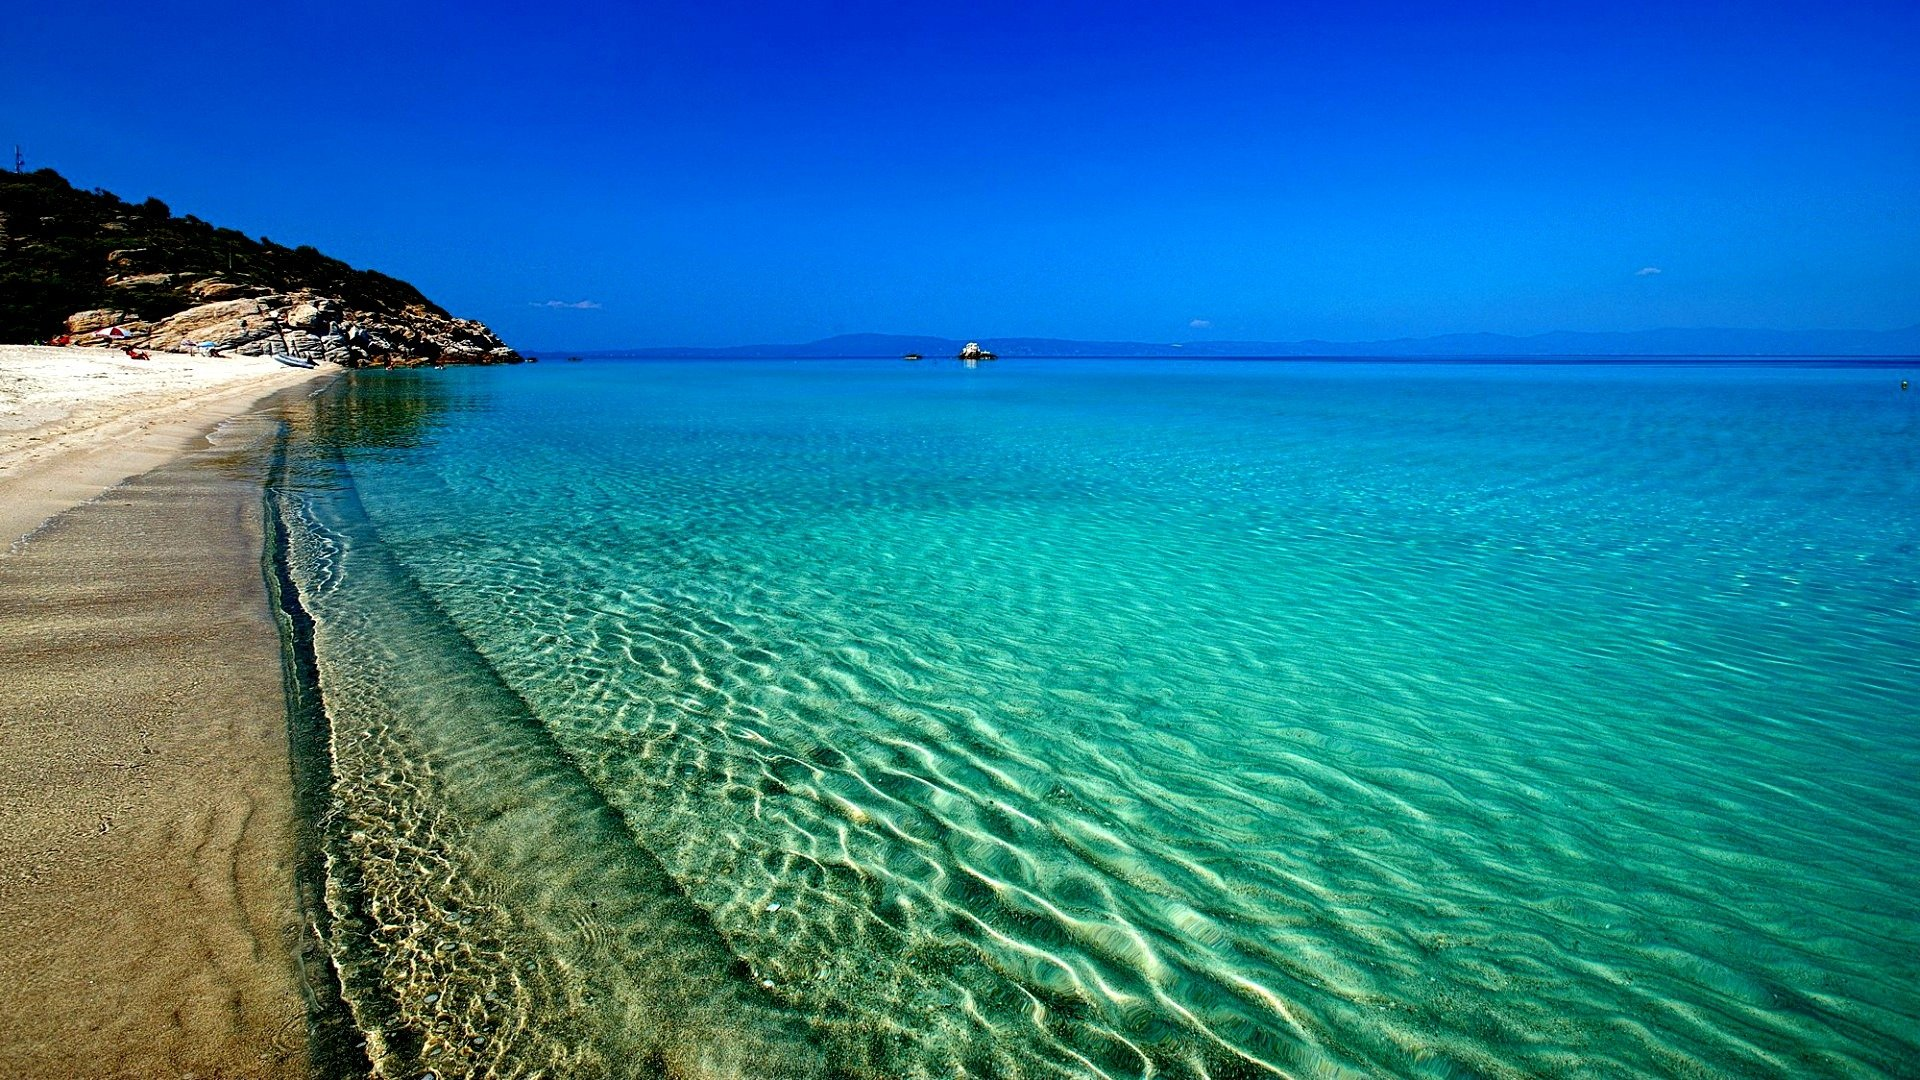 Clearest Water In The World Beach Full Hd Wallpaper And Background Image 1920x1080